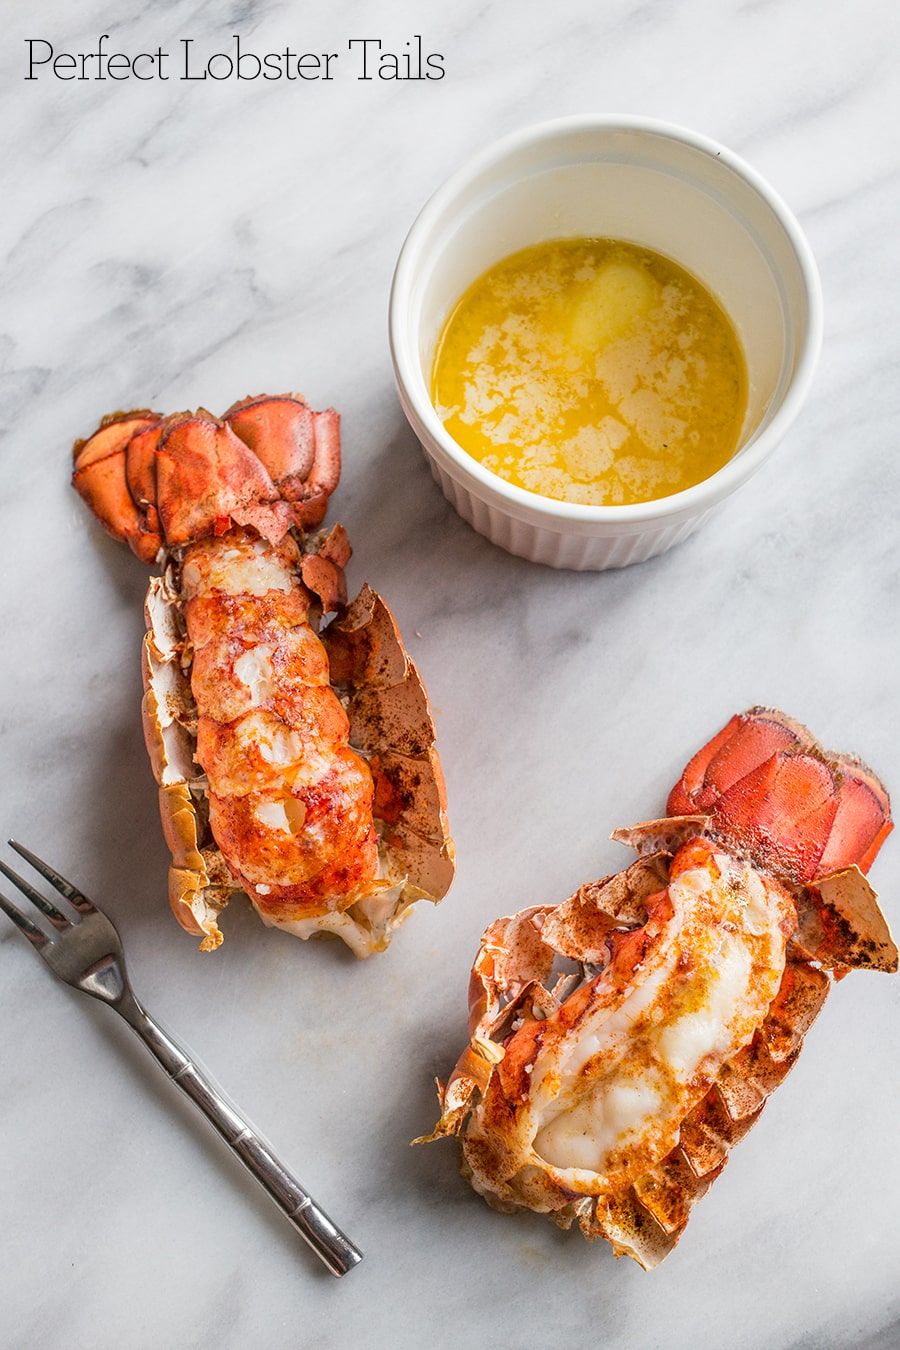 The perfect way to cook lobster tails- under 10 minutes with this simple trick to the most delicious lobster tails ever!